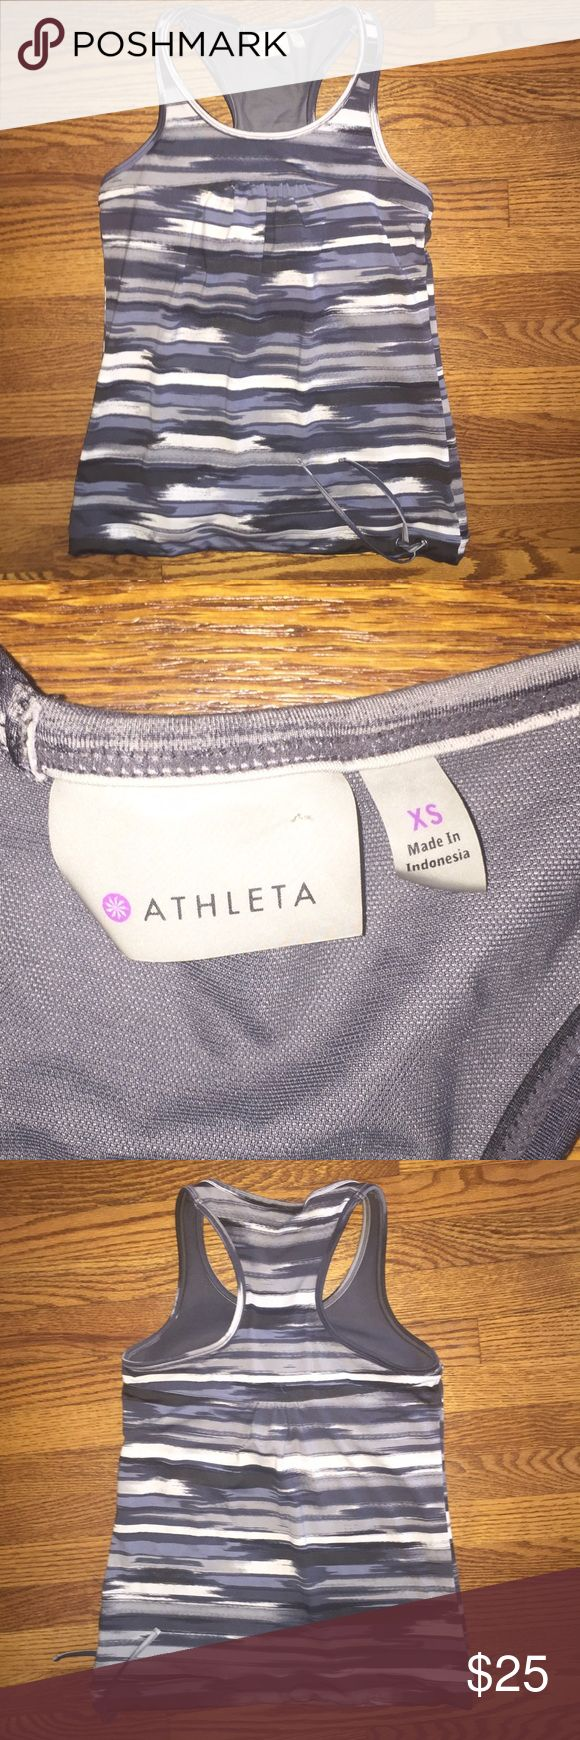 Athleta tank top...Size XS Athleta tank top with built in bra...greys and white...Size XS...no rips, stains or snags...from a smoke free home! Athleta Tops Tank Tops